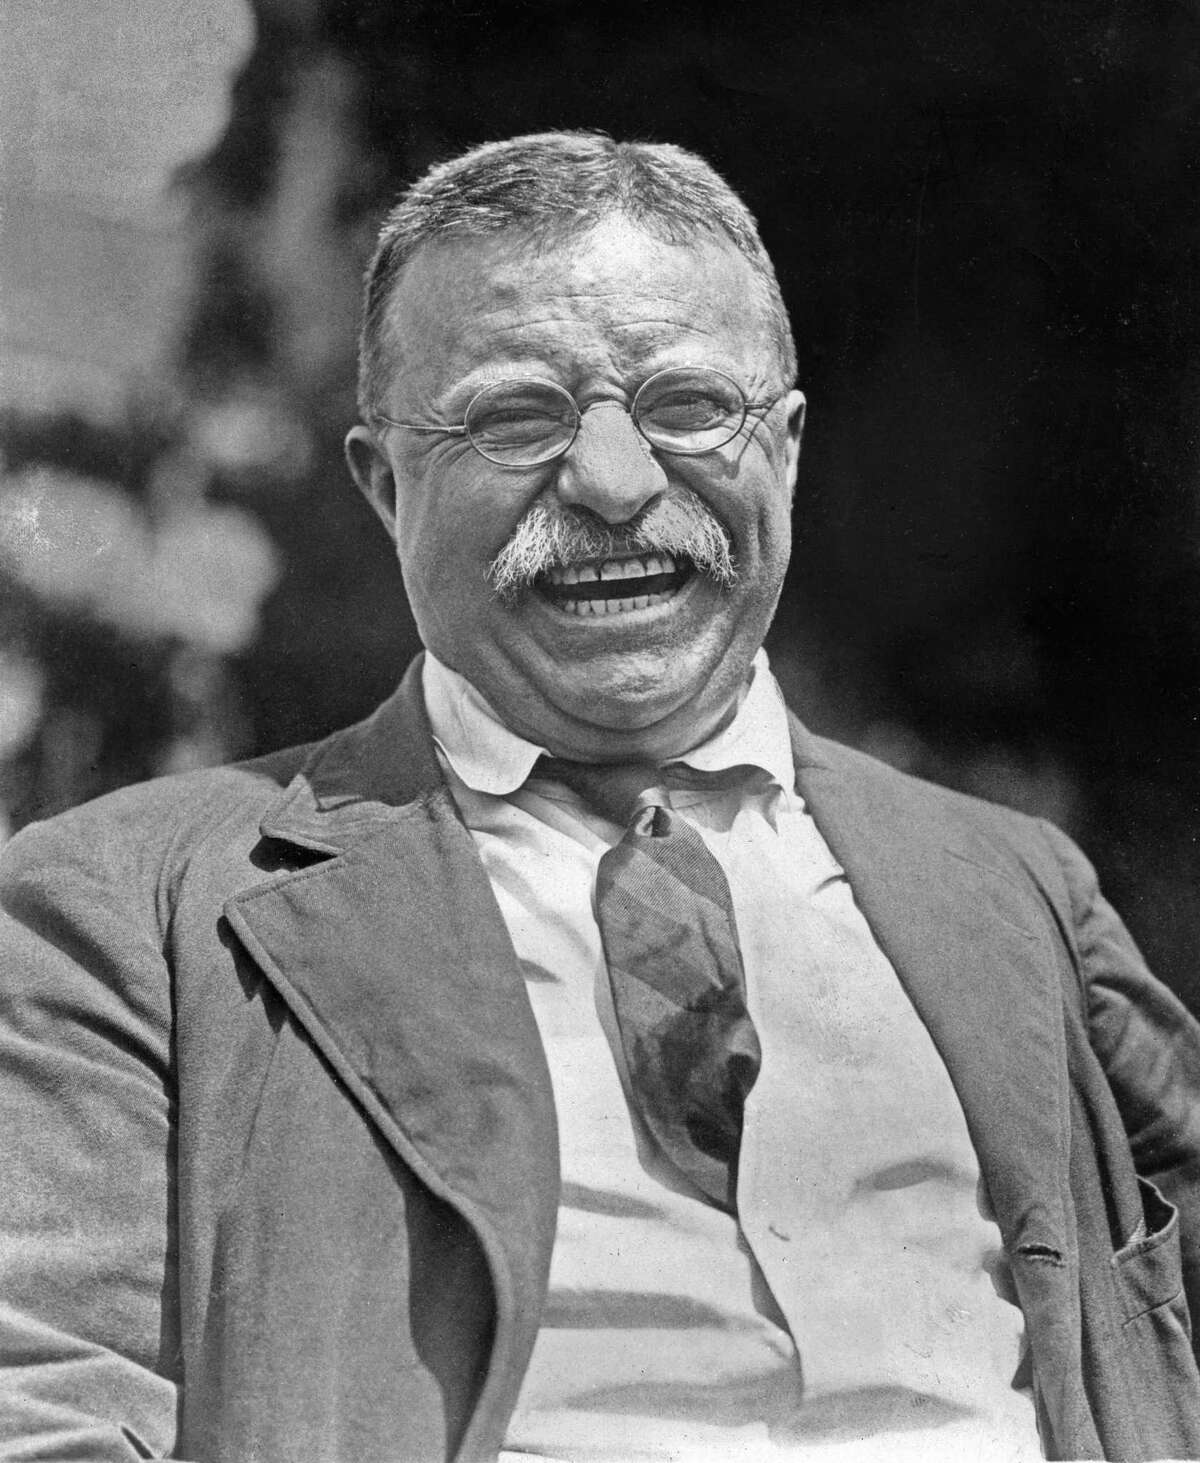 """Theodore Roosevelt In 1912, as a presidential candidate for the Progressive Party, Teddy Roosevelt was on his way to give a speech when he was shot in the chest. As he stood to begin his speech, he said,"""" Friends, I shall ask you to be as quiet as possible. I don't know whether you fully understand that I have been shot."""" The bullet was slowed by piercing his 50-page speech in his breast pocket."""